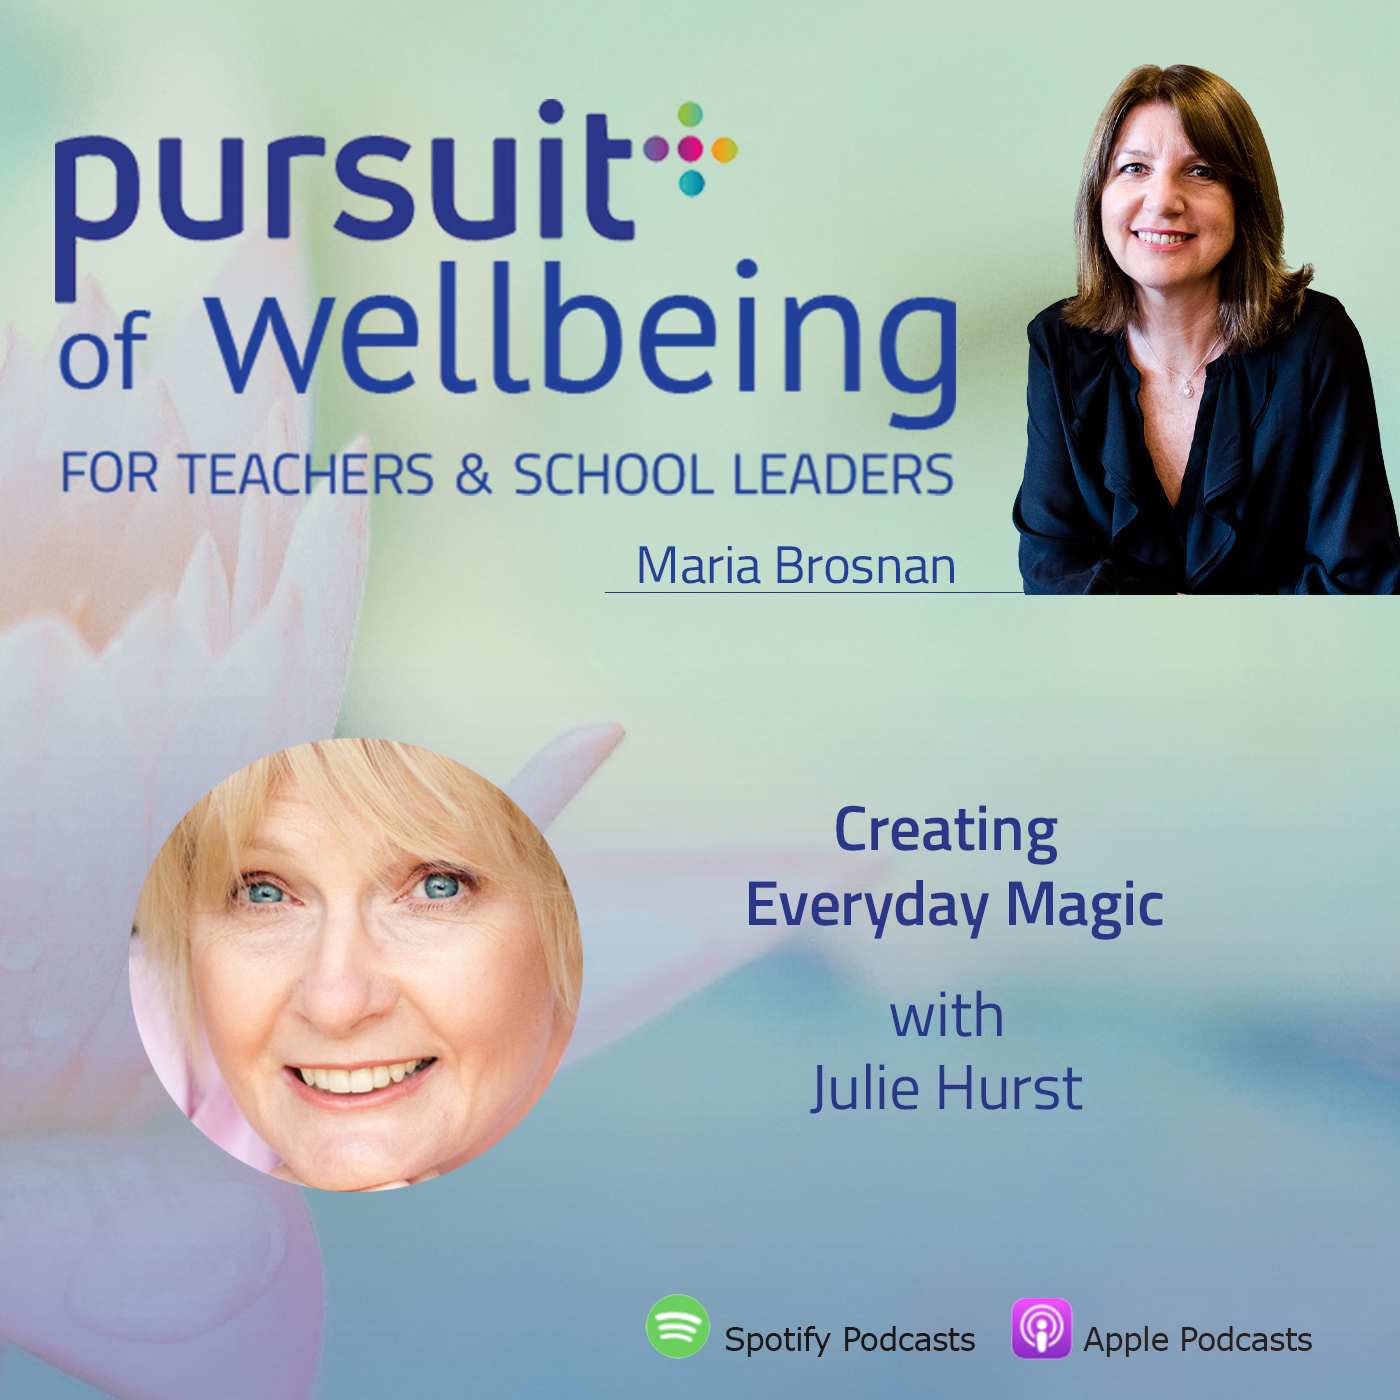 Creating Everyday Magic with Julie Hurst